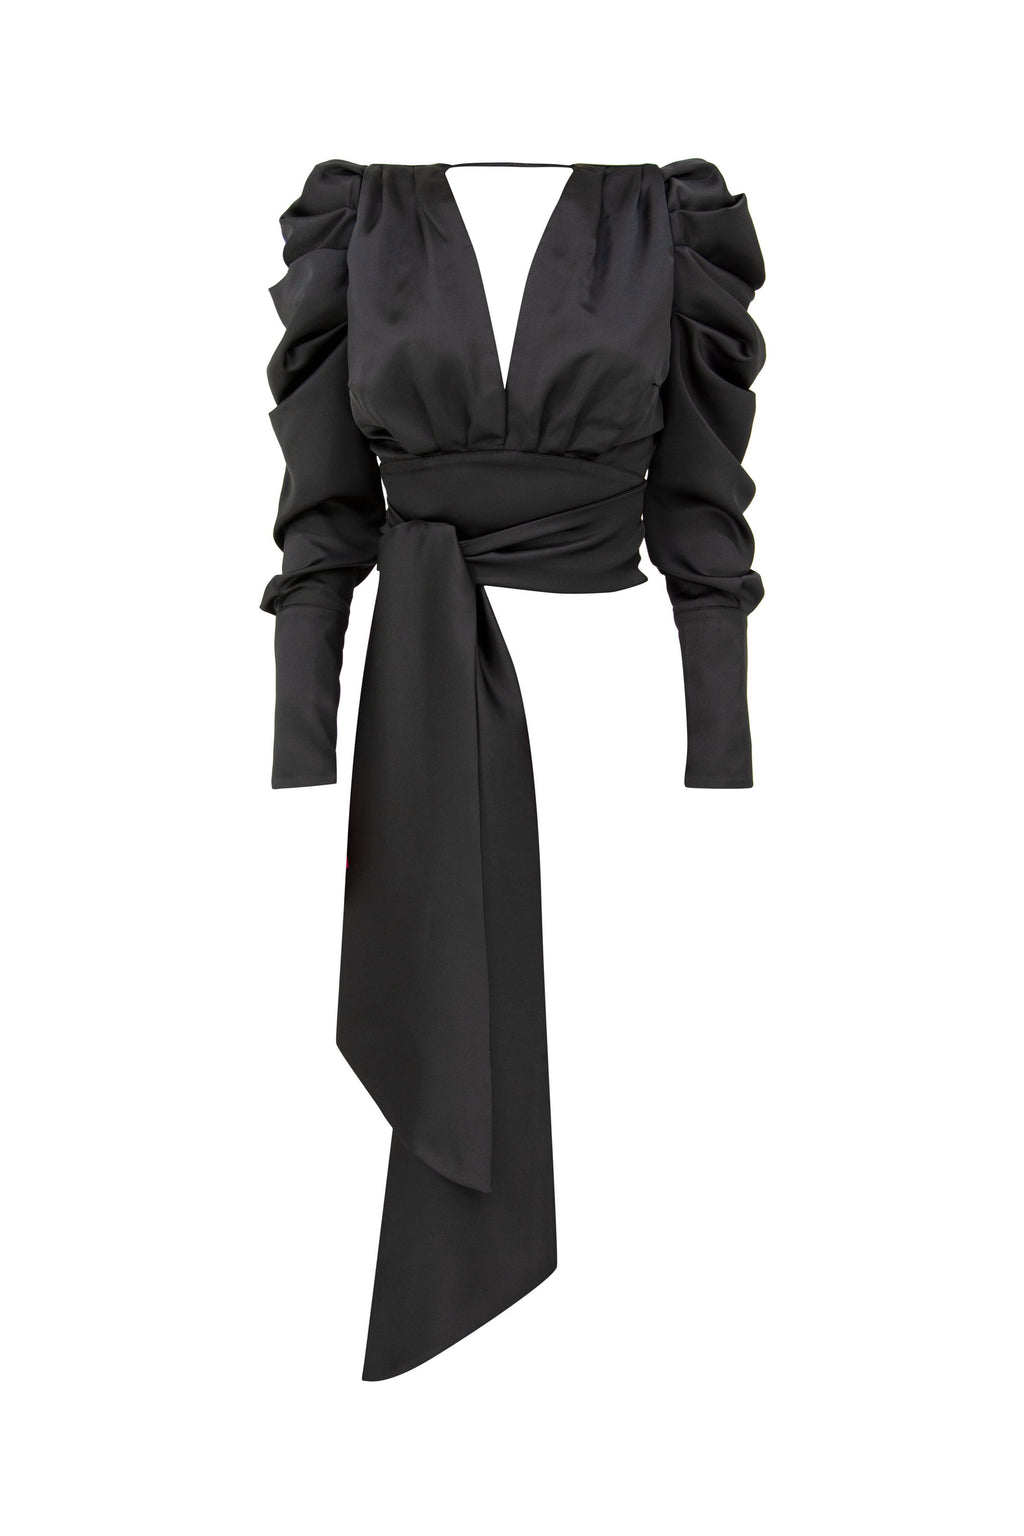 Edge of Desire Backless Self-Tie Satin Shirt - Tia Dorraine London